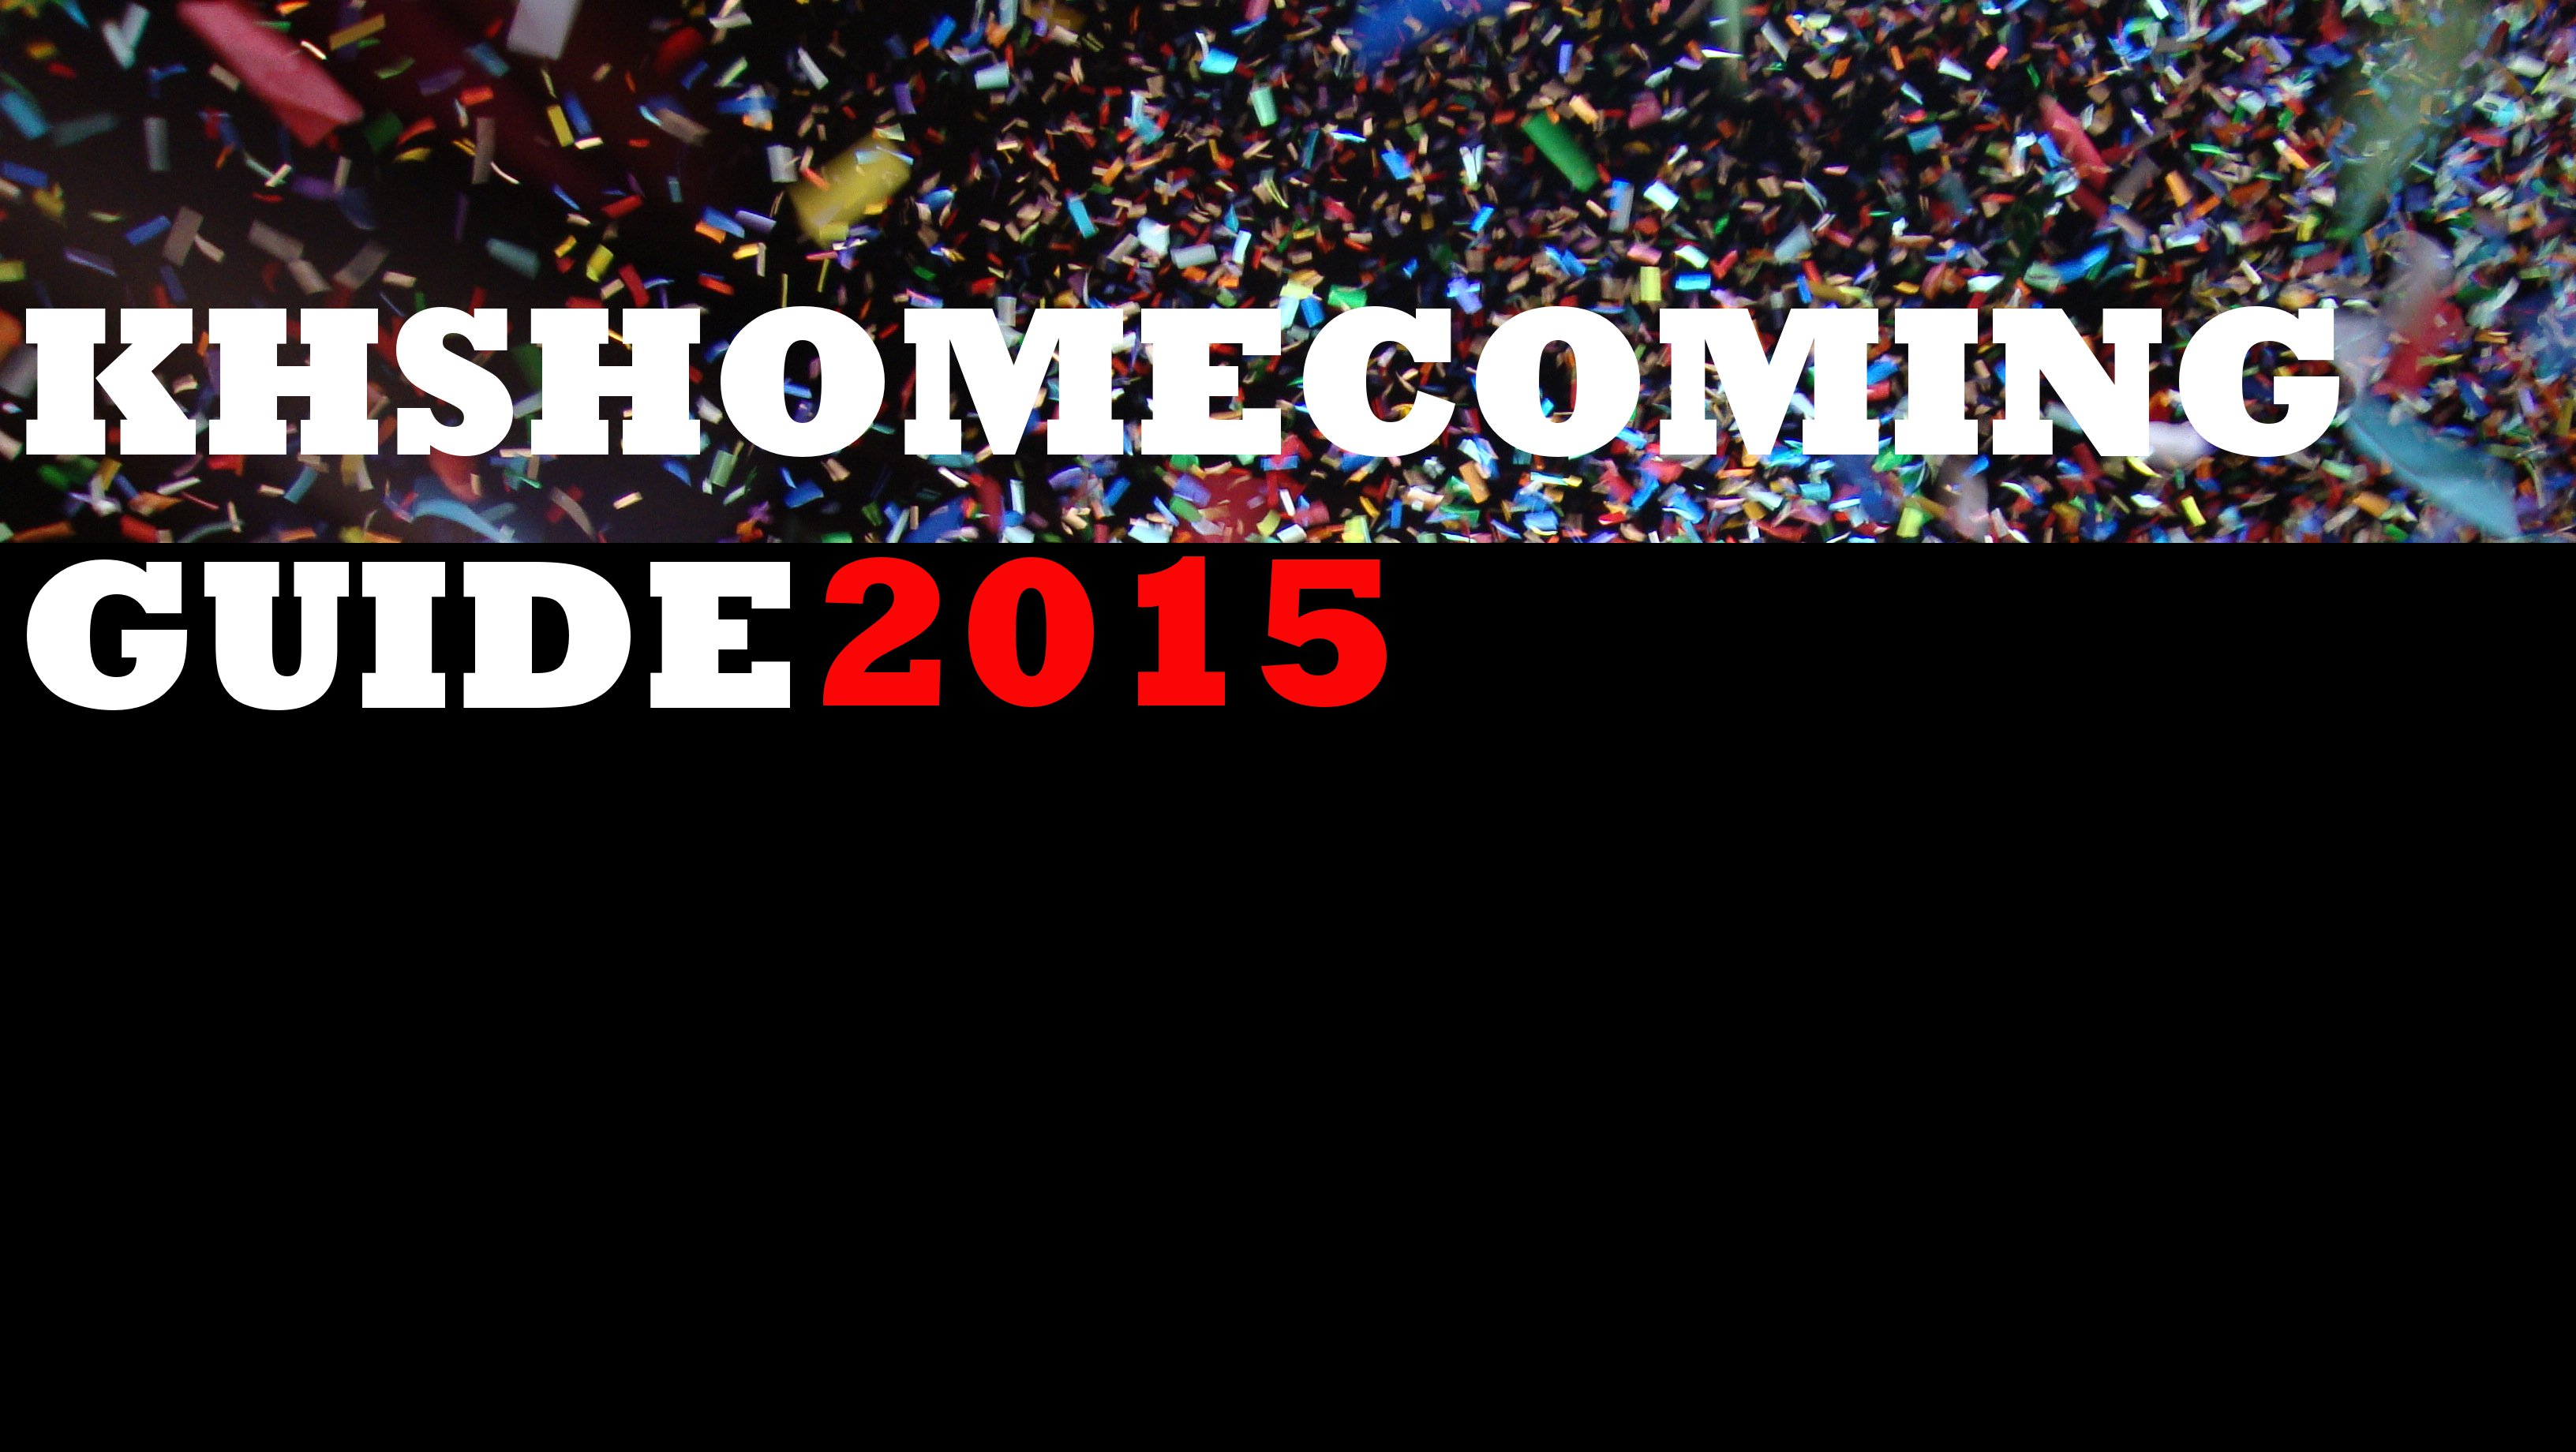 KHS Homecoming 2015 Guide